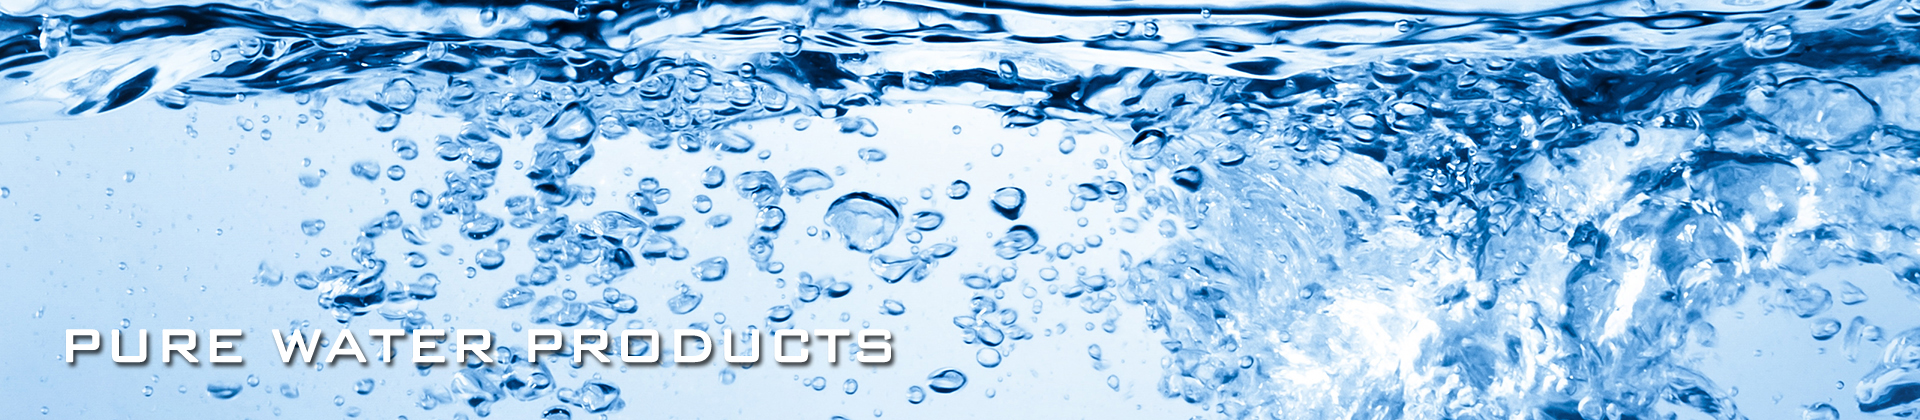 banner-purewater-footer